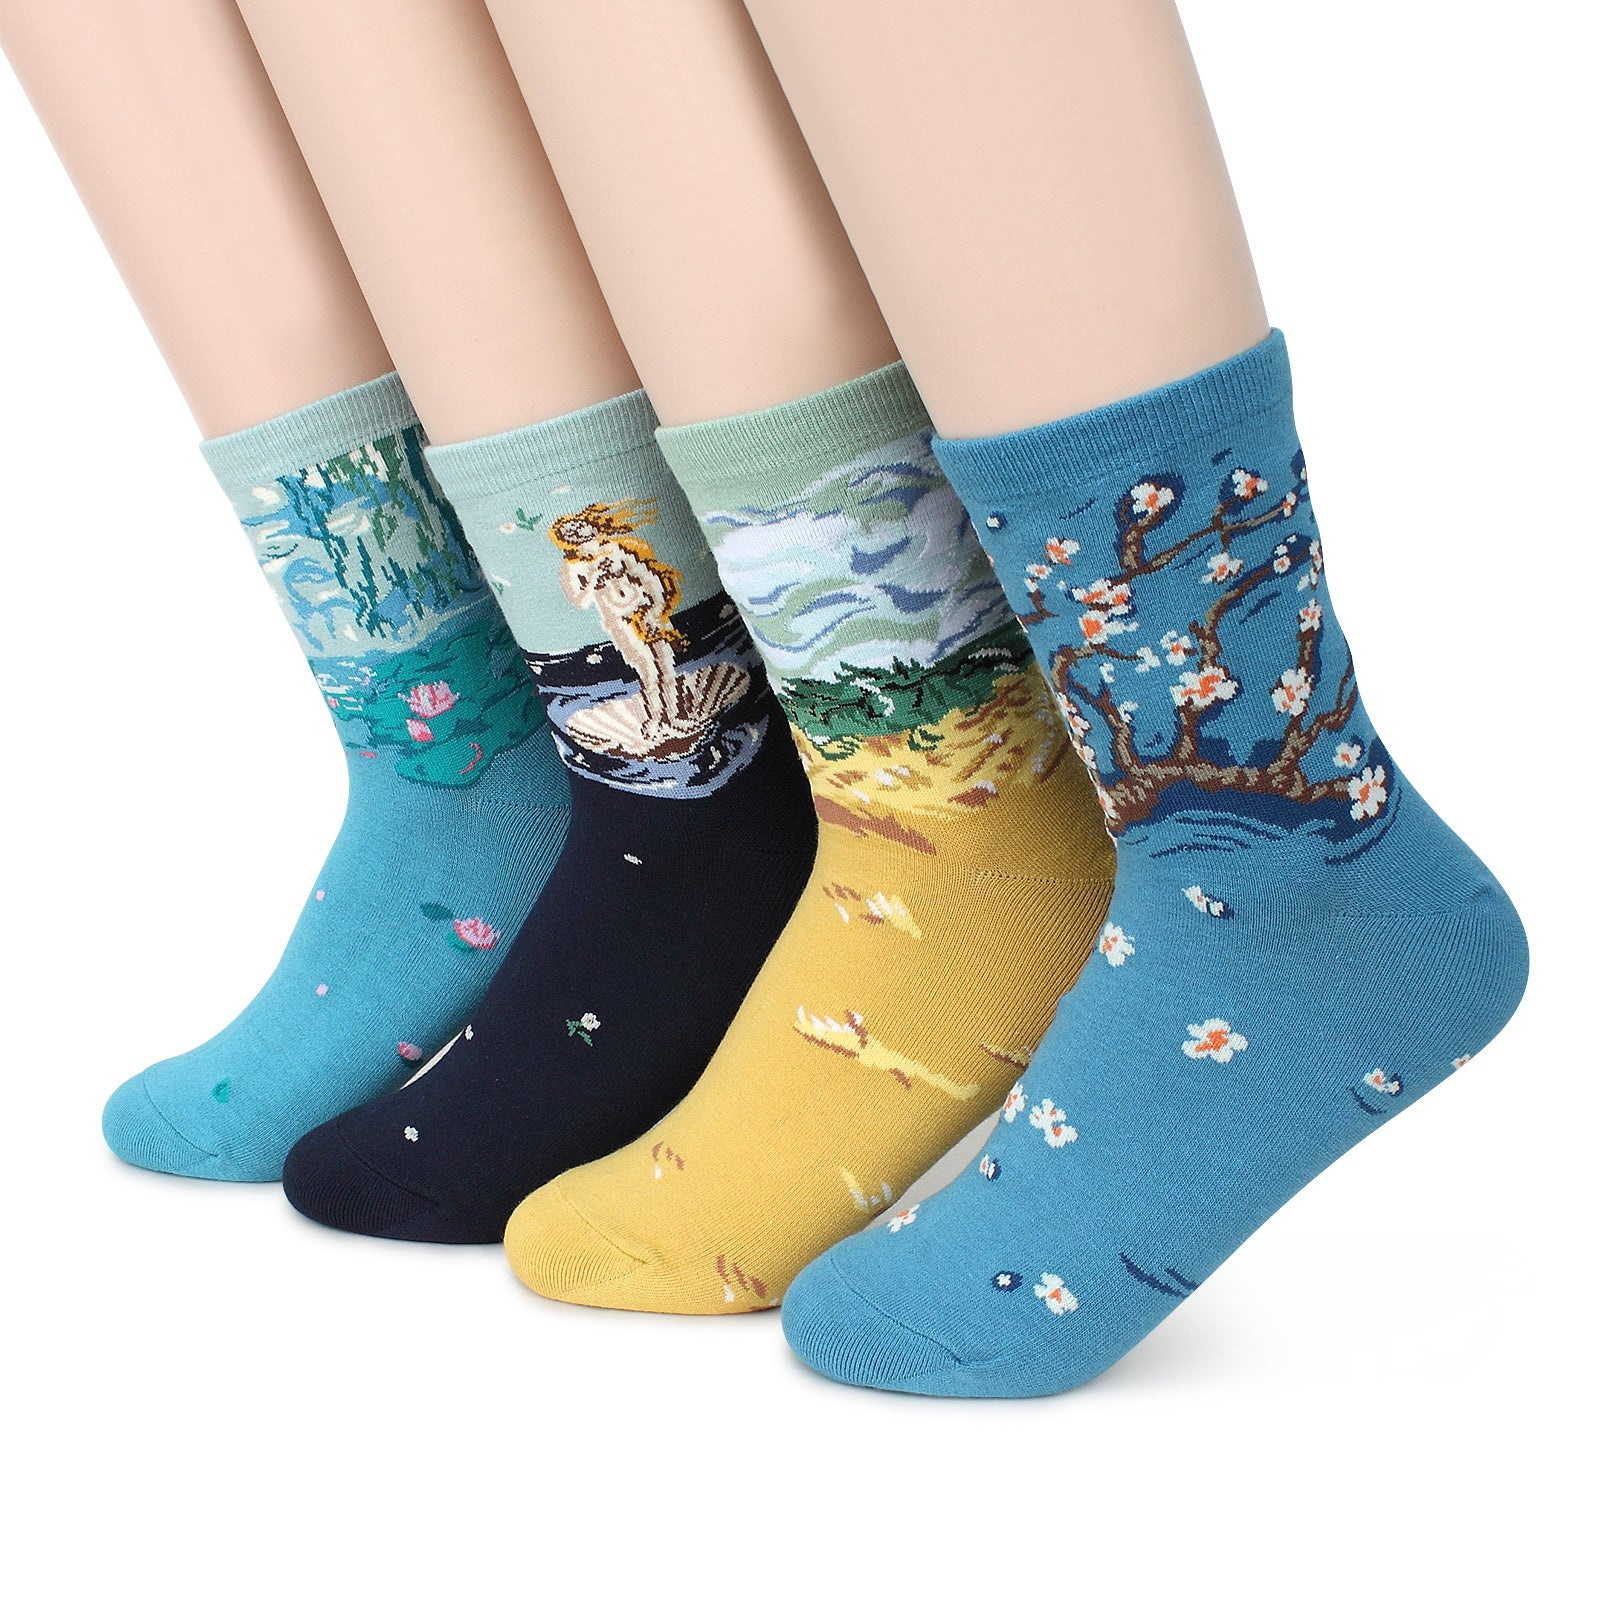 Art Patterned Casual Crew Socks (4 pairs) Women Kids Famous Painting Collection Venus AE14 - intypesocks